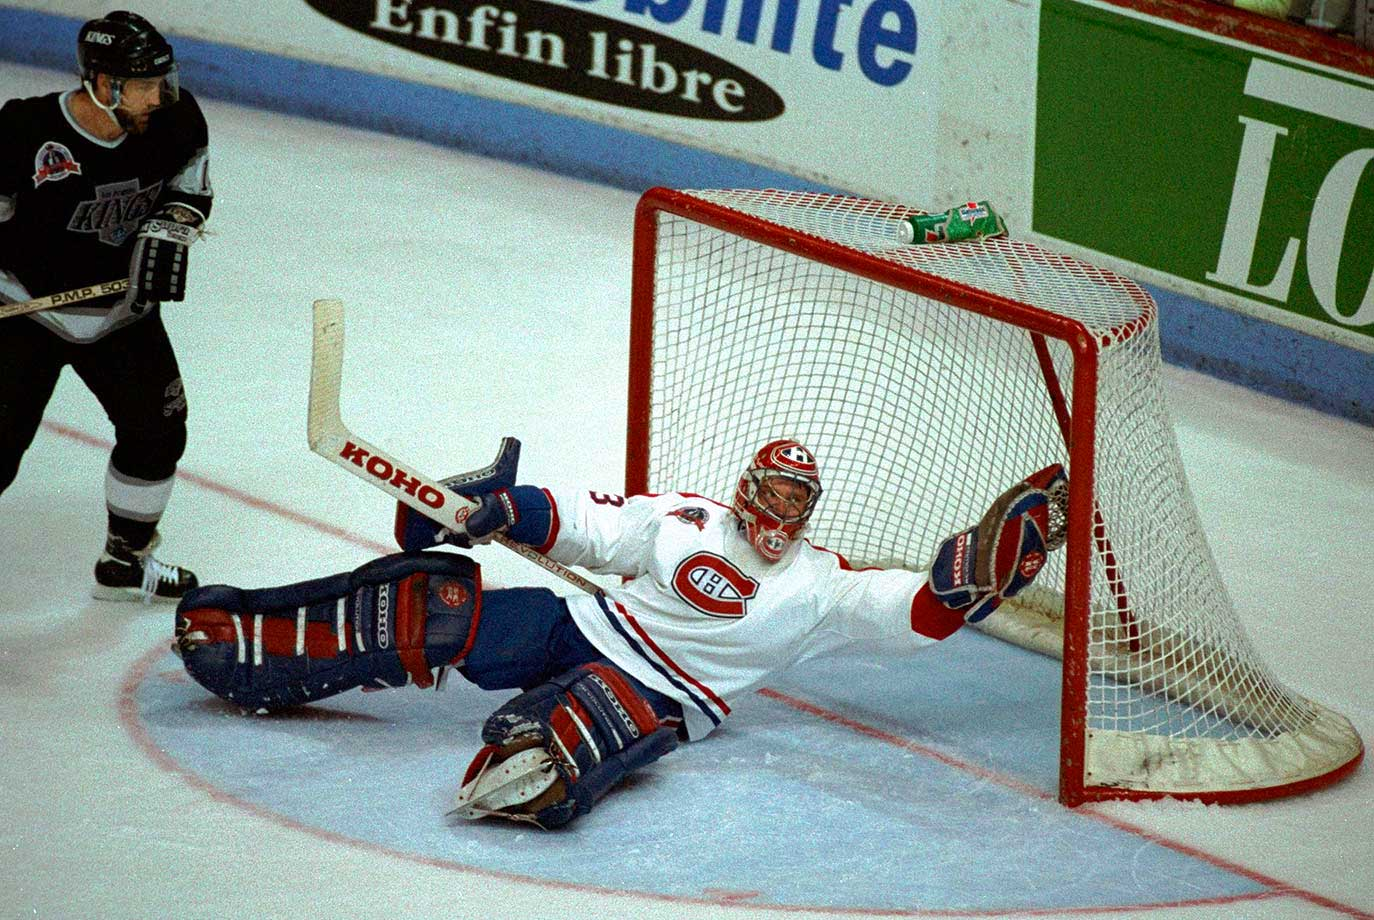 June 1, 1993 — Stanley Cup Final, Game 1 (Canadiens vs. Kings)